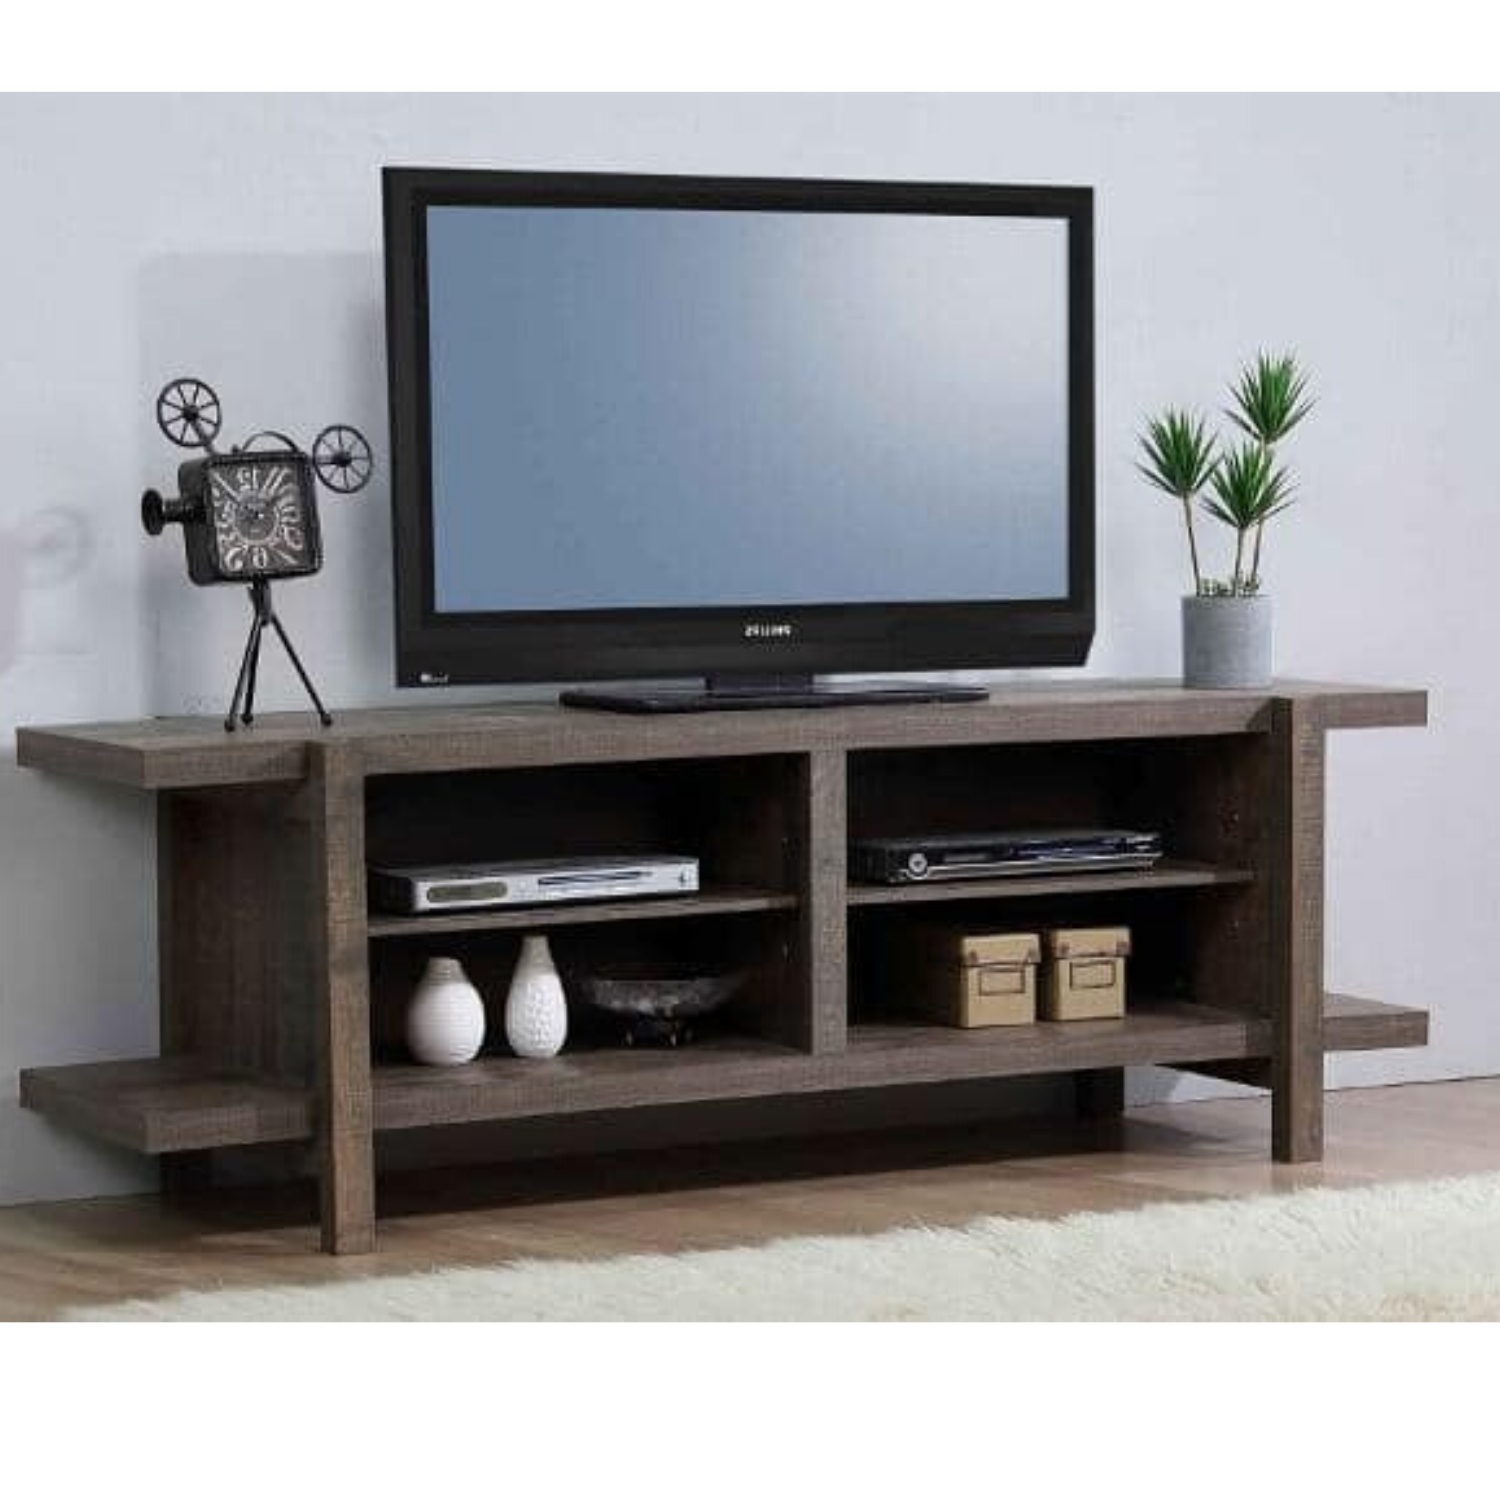 """Neilsen Tv Stands For Tvs Up To 65"""" With Fashionable Tammy 65'' Tv Stand For Tvs Up To 70'', Rustic Mdf Wood Tv (View 8 of 25)"""